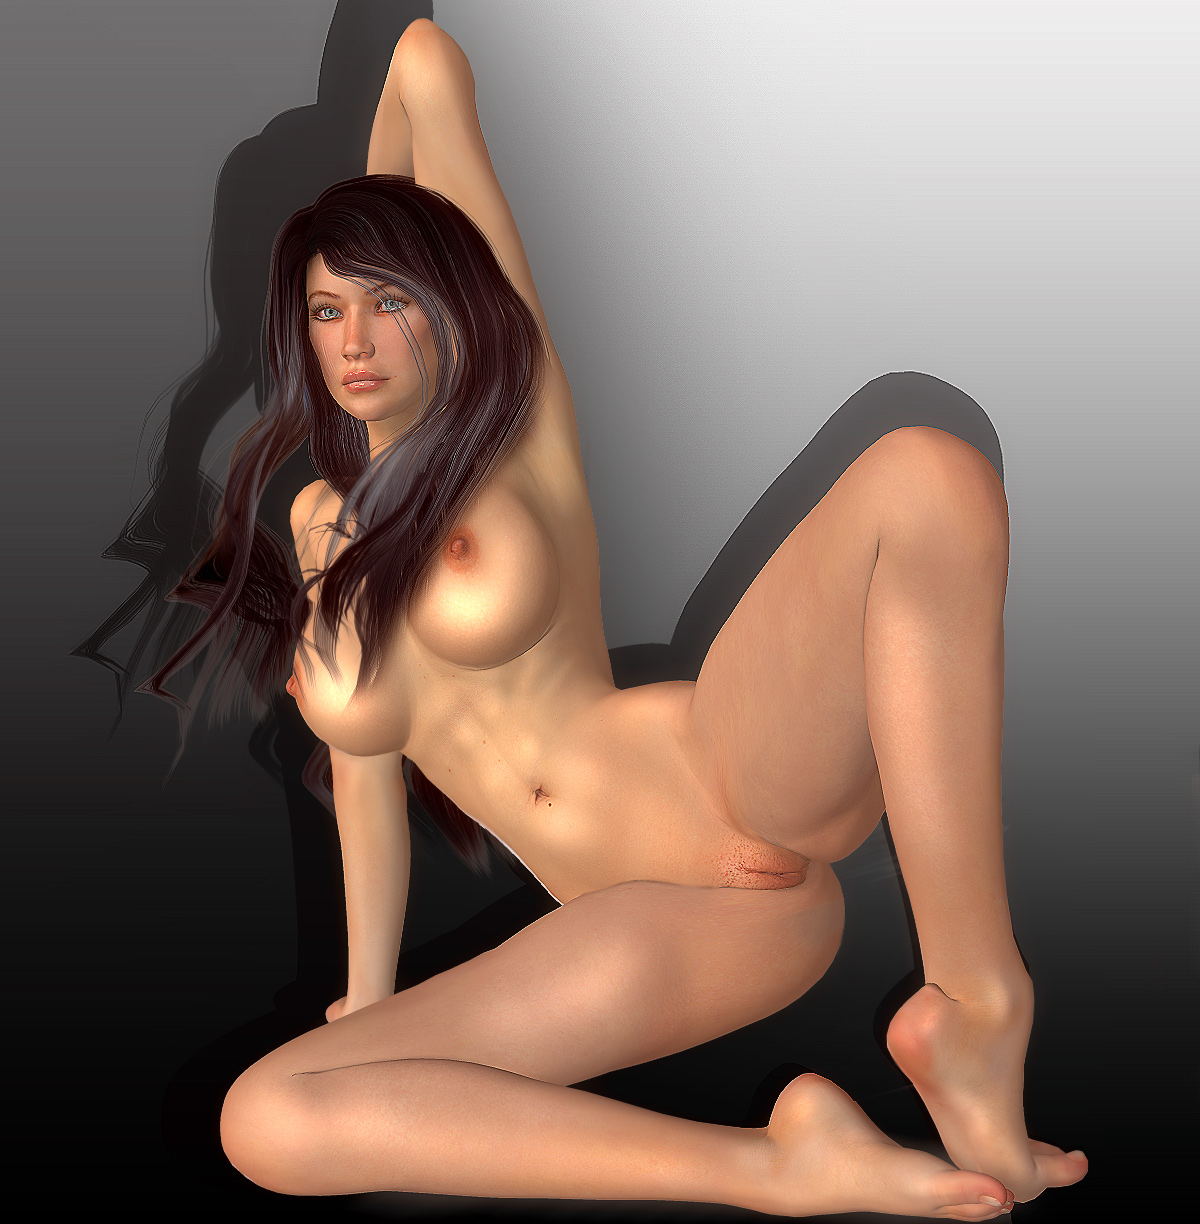 Fantasy naked animated 3d girl images pornos comics